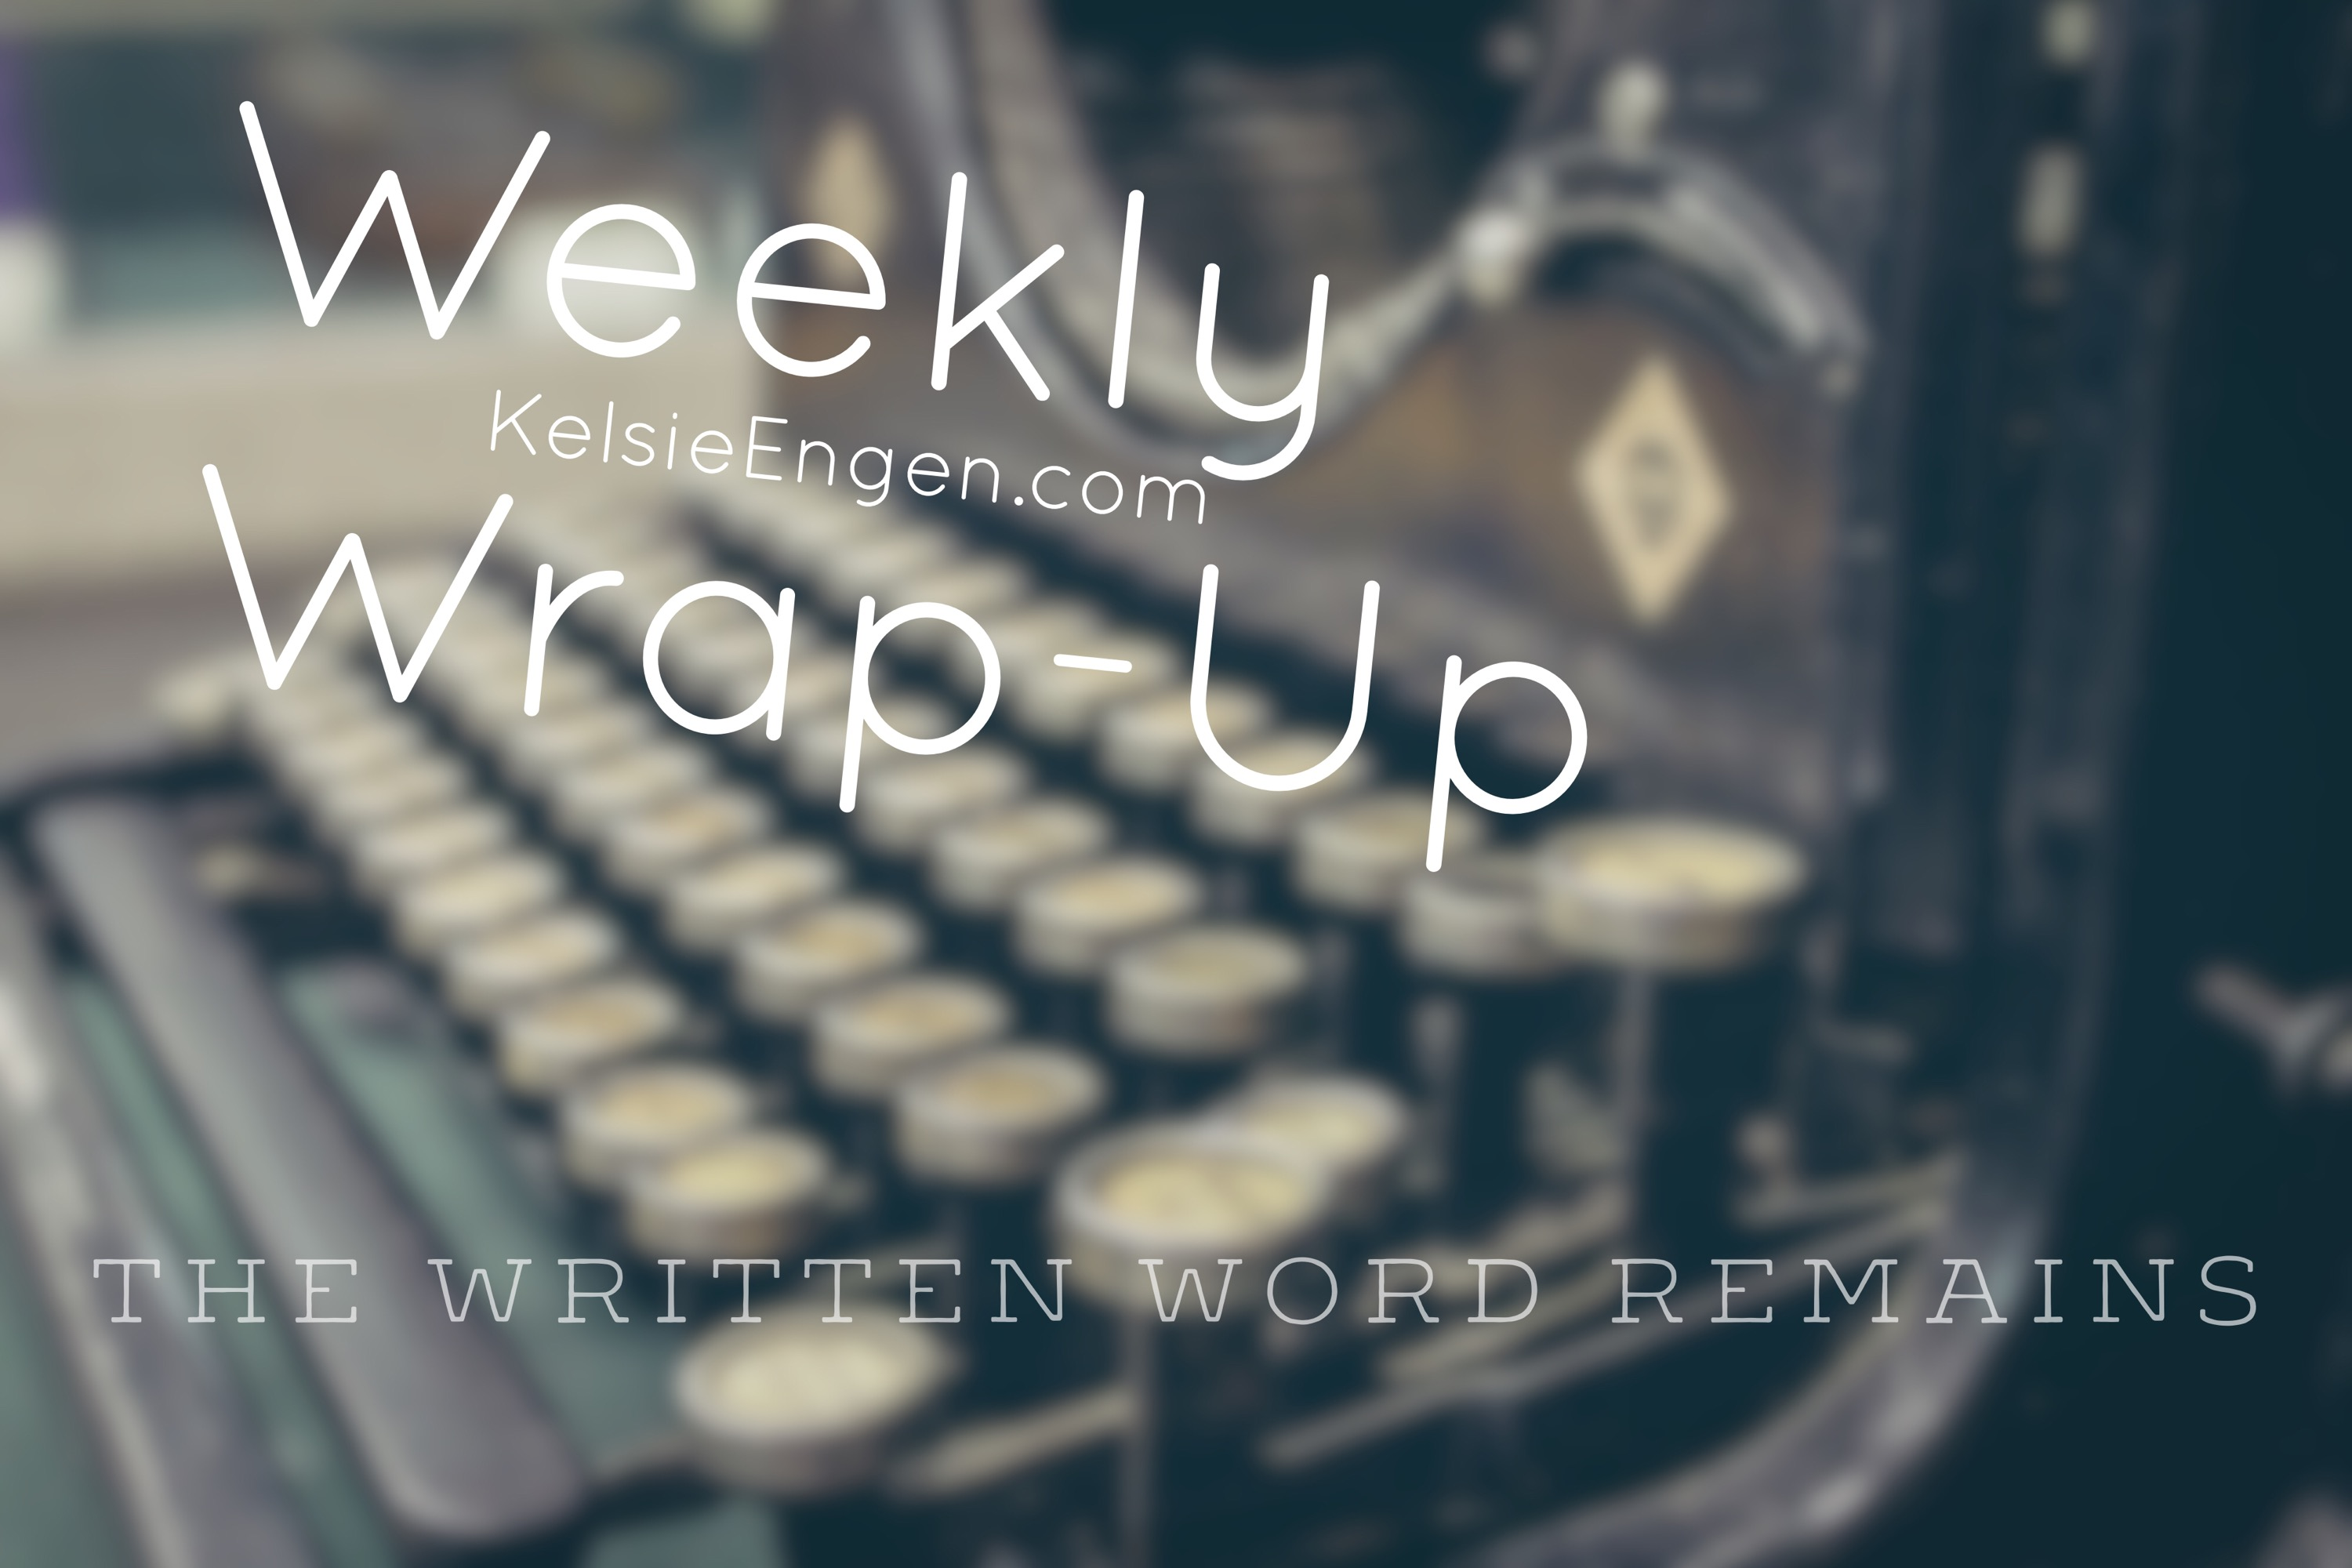 Week 5 Wrap-Up